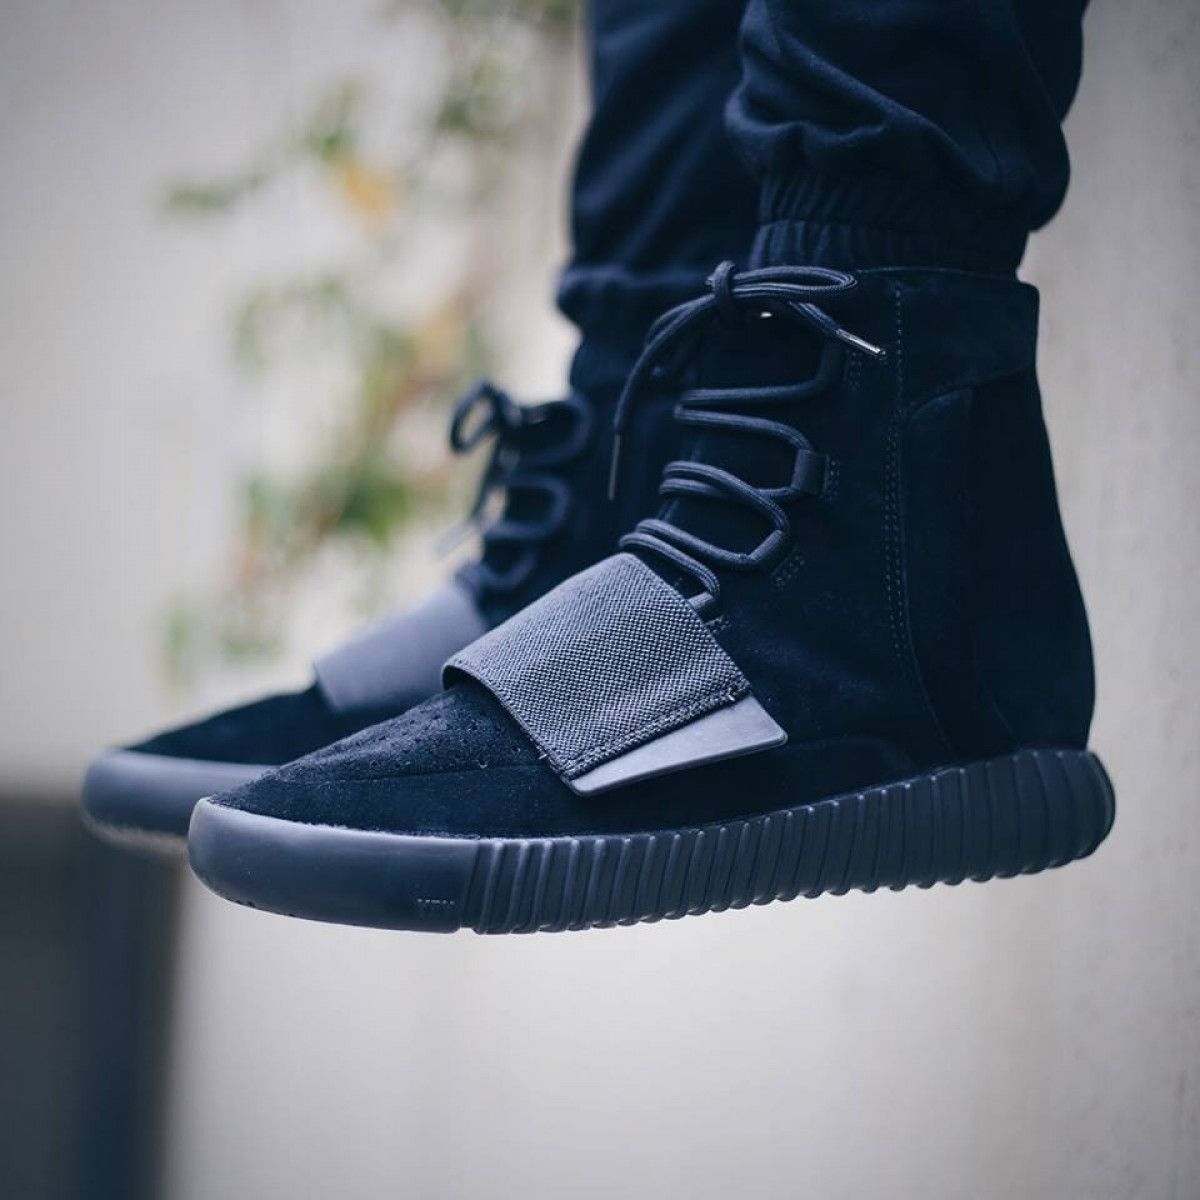 new concept 31751 92946 adidas yeezy boost 750